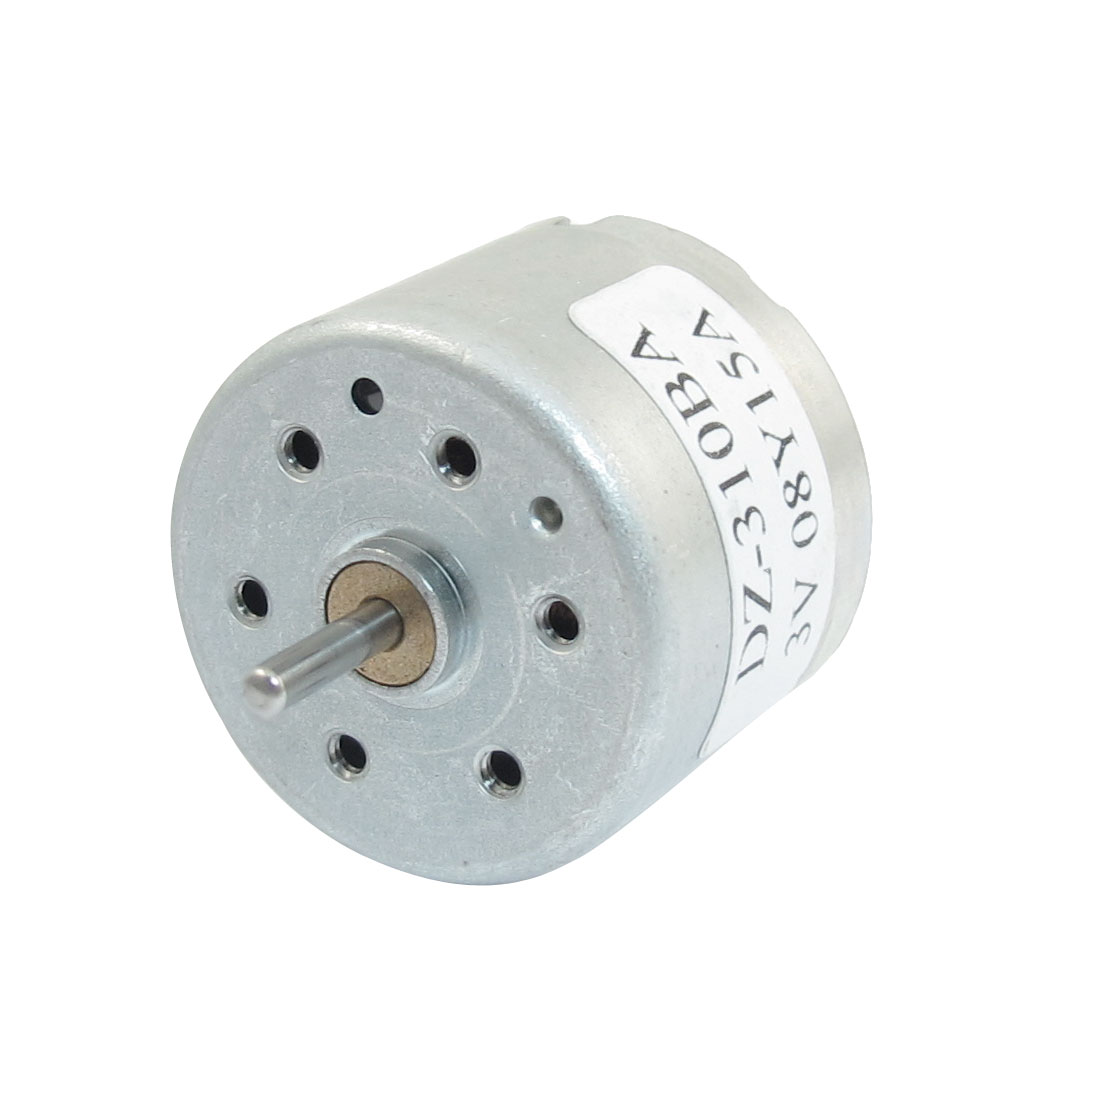 1700-3400RPM 3-6V High Torque Cylinder Electric Mini DC Motor